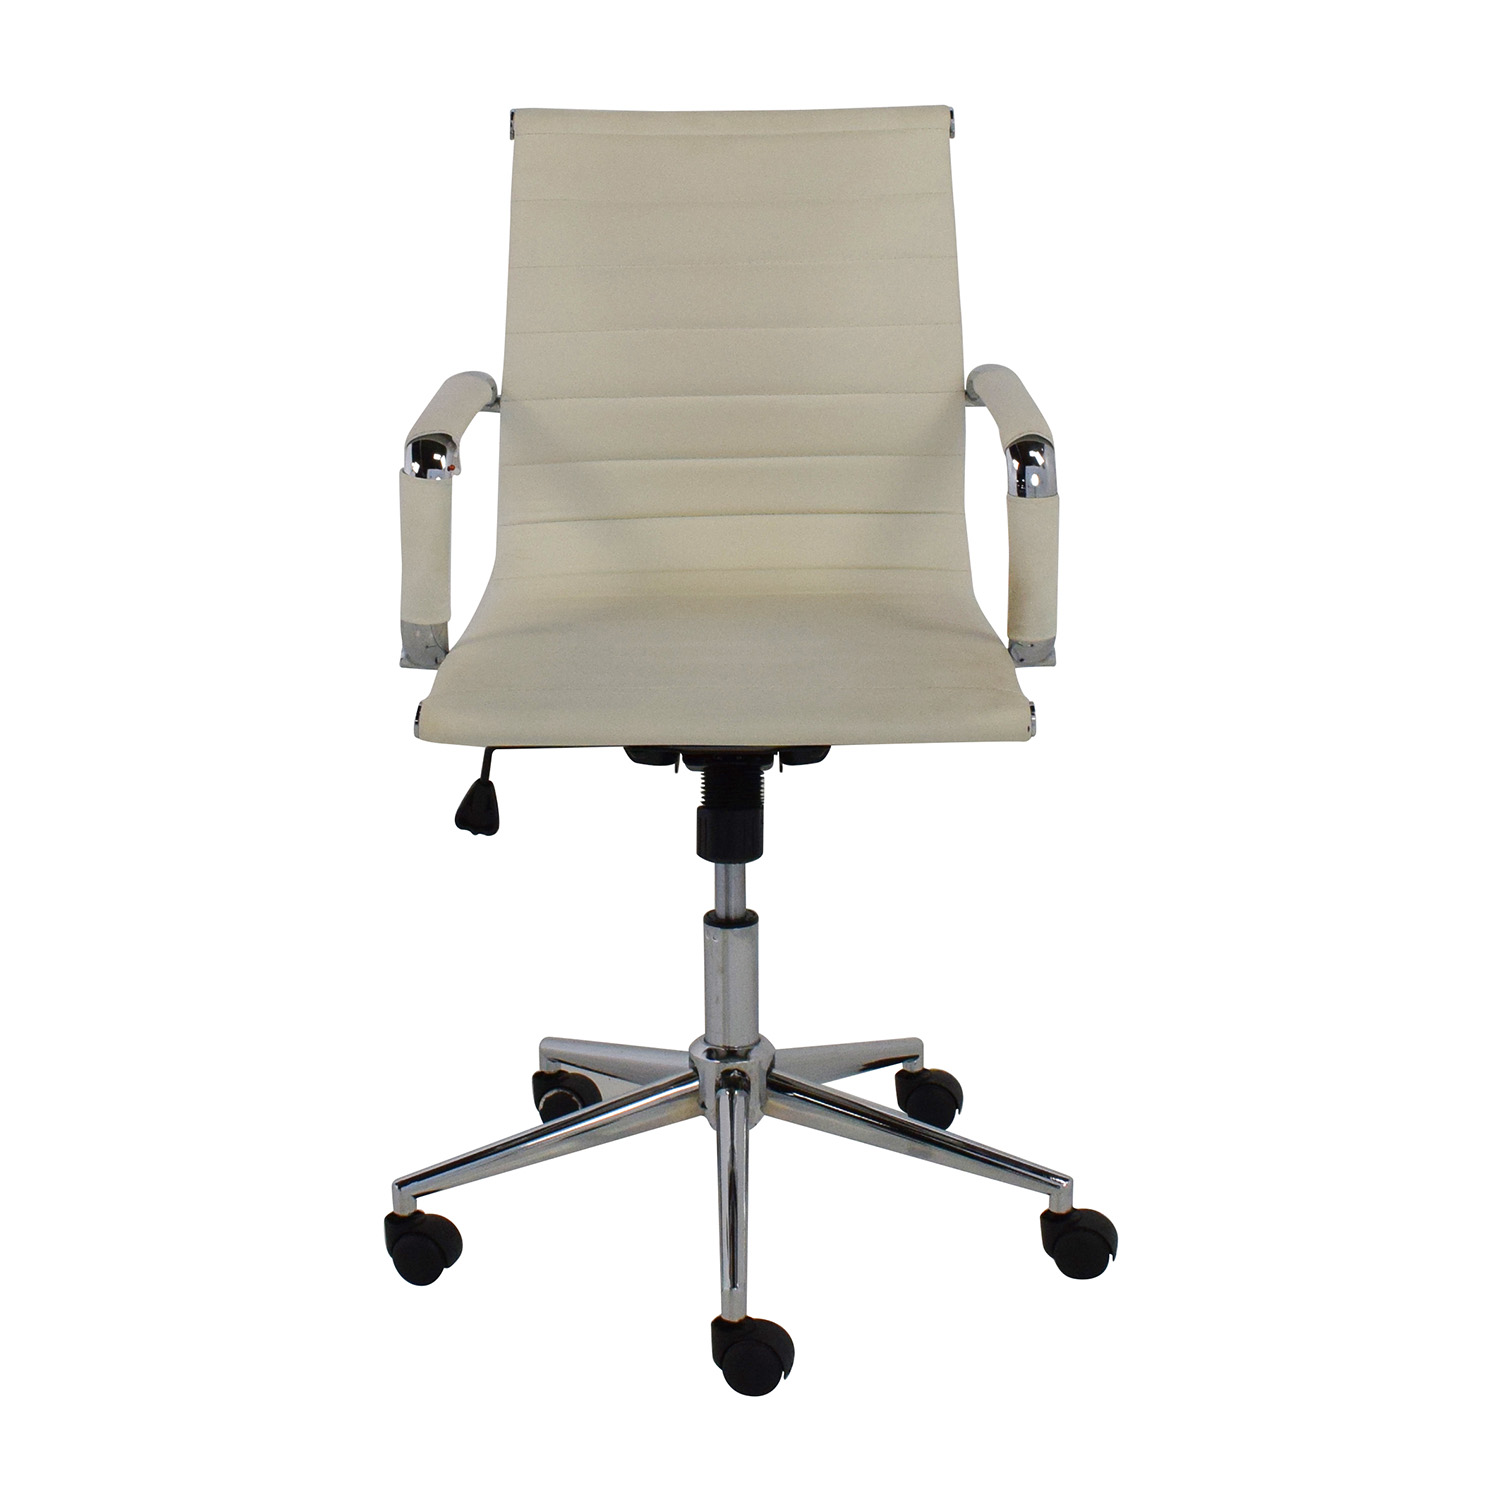 32% OFF - 2xhome 2Xhome Modern Mid Back White Faux Leather Office Chair /  Chairs